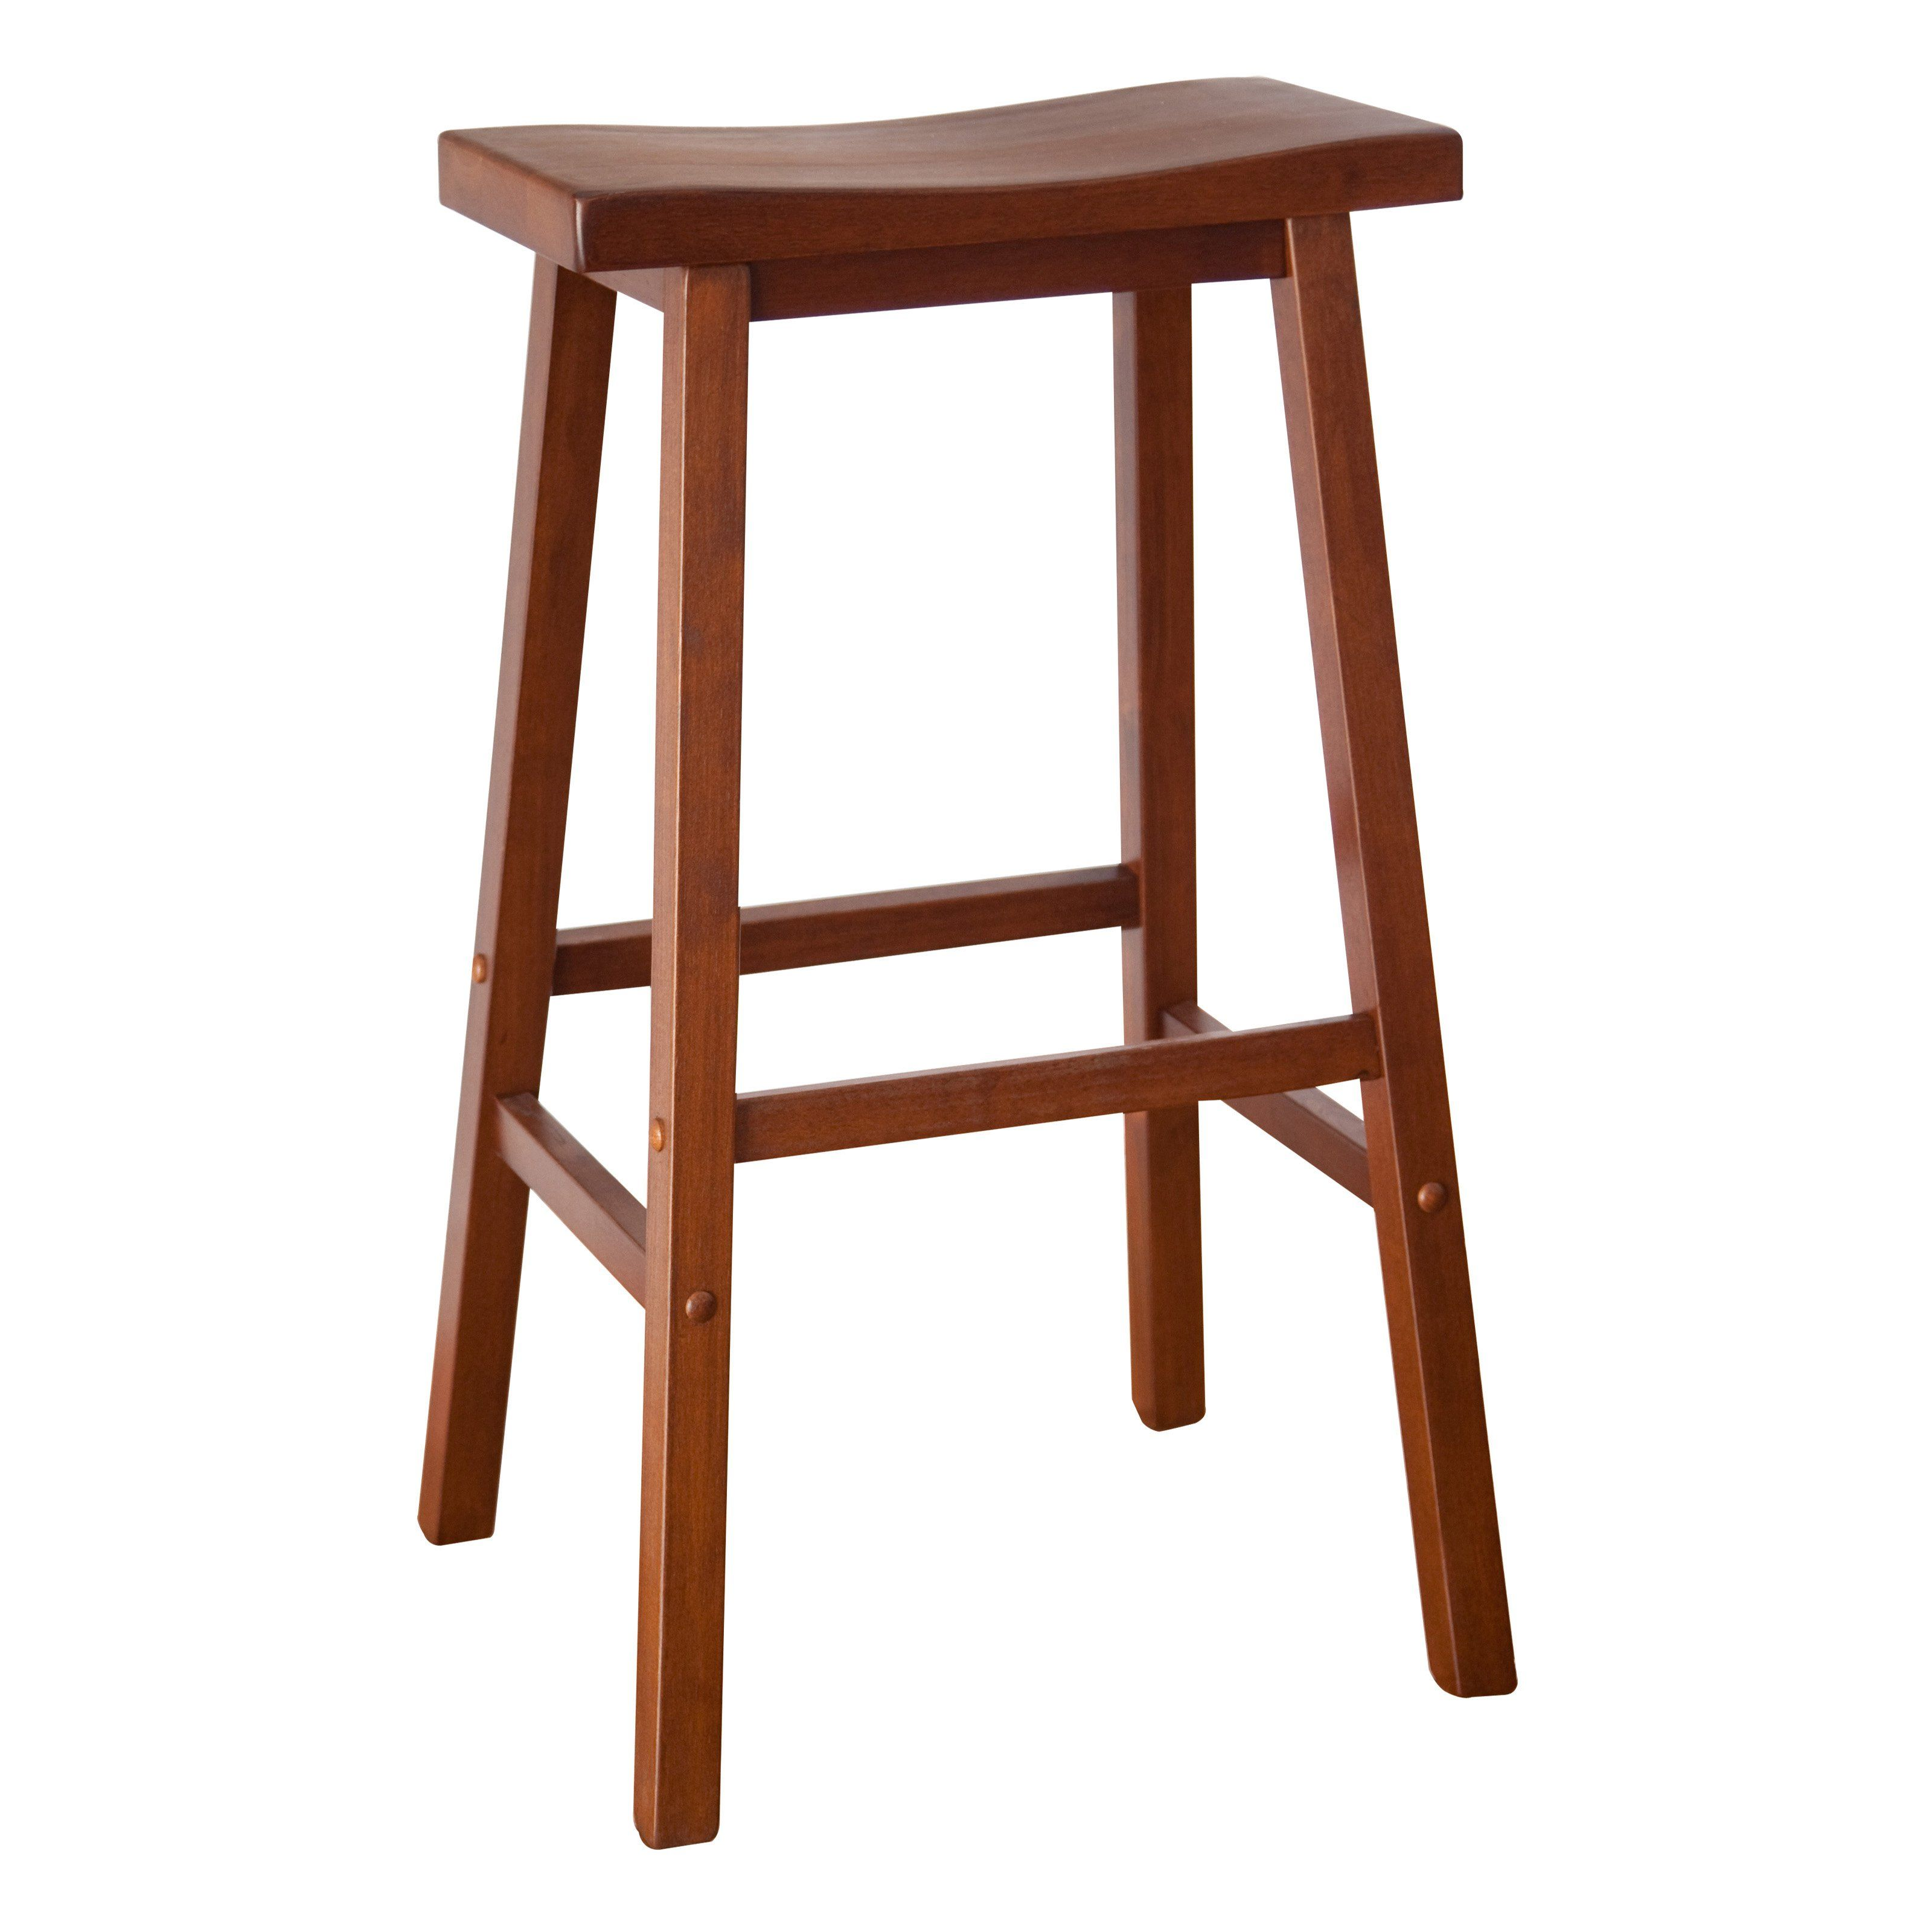 Winsome Wood 29 Inch Saddle Seat Stool Walnut Pack Of 2